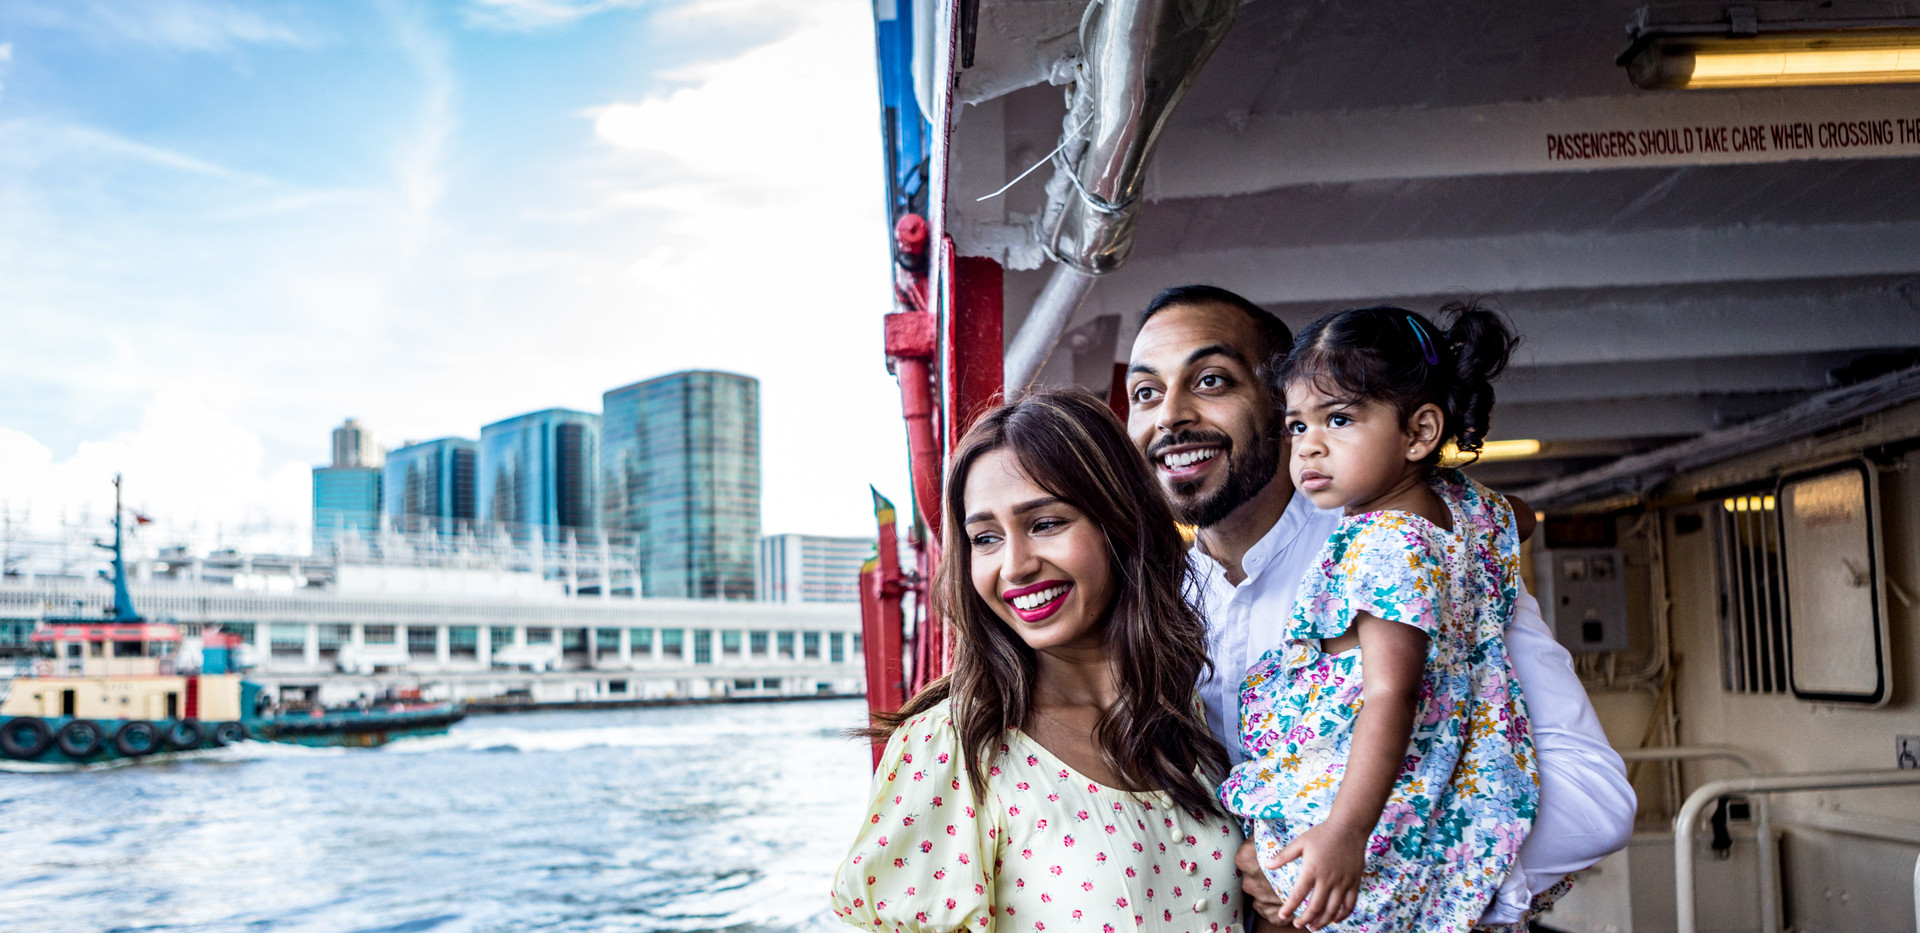 Family of three riding the Star Ferry while looking at the view